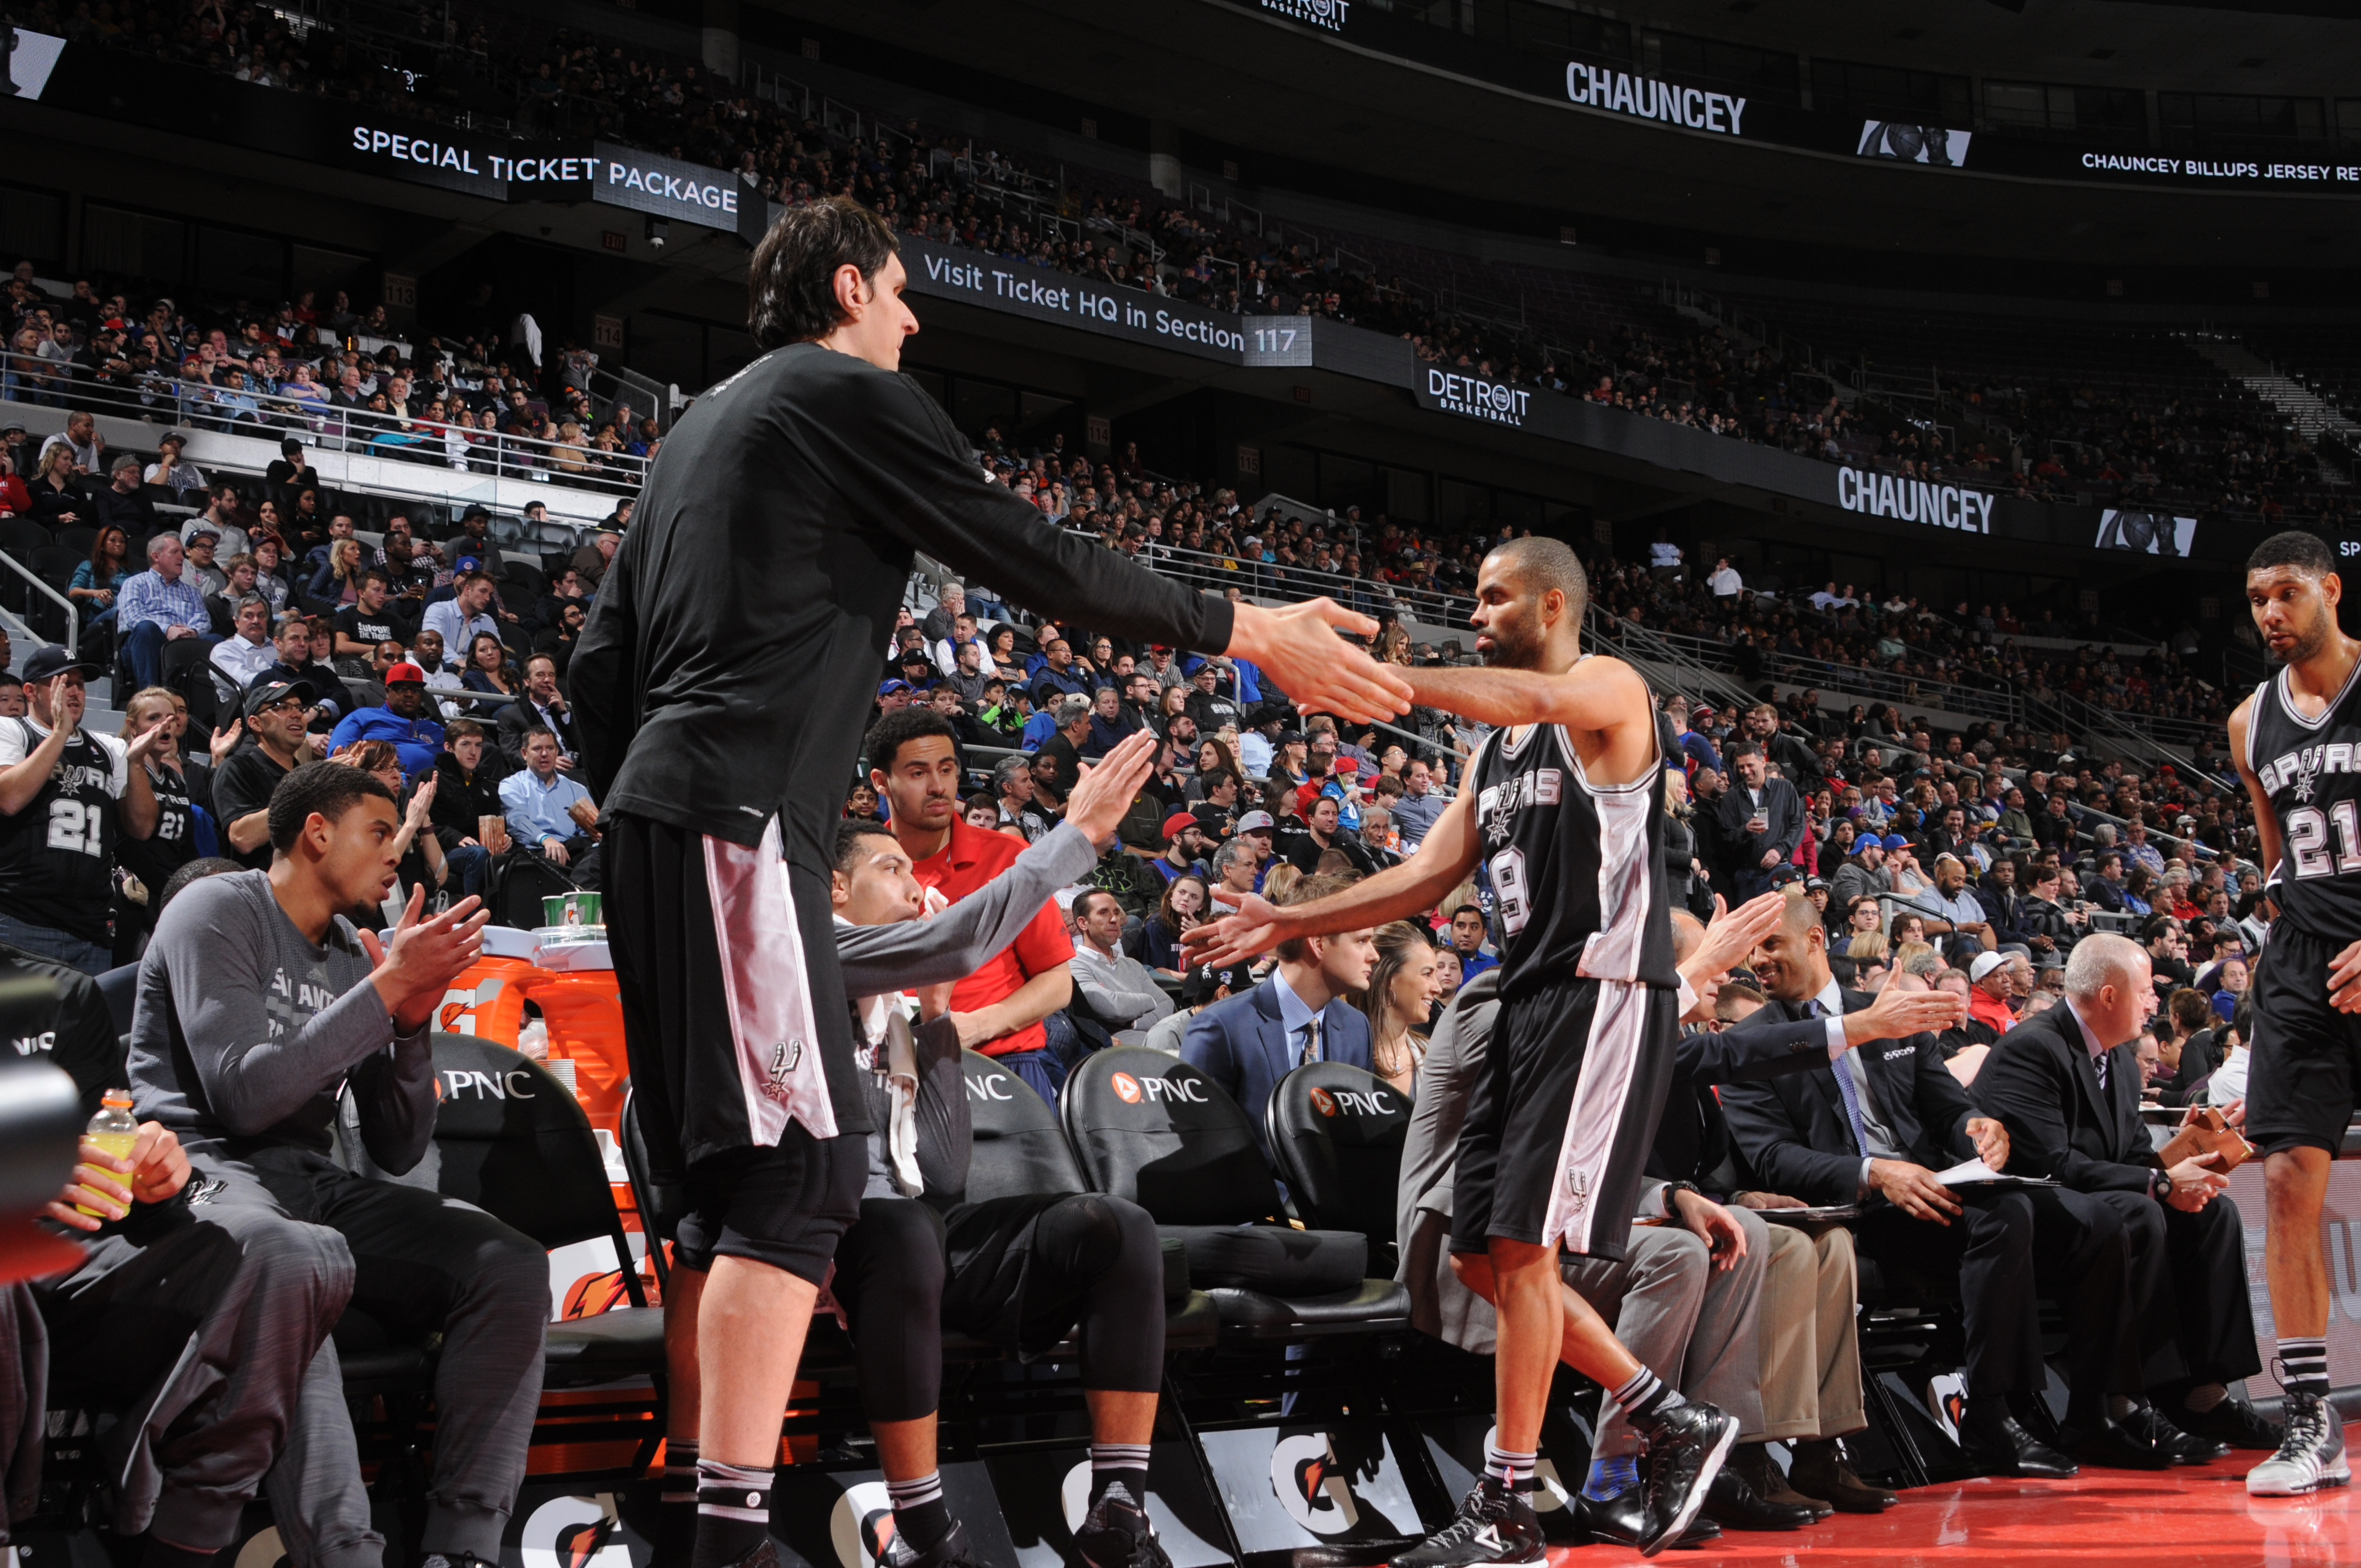 AUBURN HILLS, MI - JANUARY 12:  Tony Parker #9 of the San Antonio Spurs shakes hands with his teammates during the game against the Detroit Pistons on January 12, 2016 at The Palace of Auburn Hills in Auburn Hills, Michigan. (Photo by Allen Einstein/NBAE